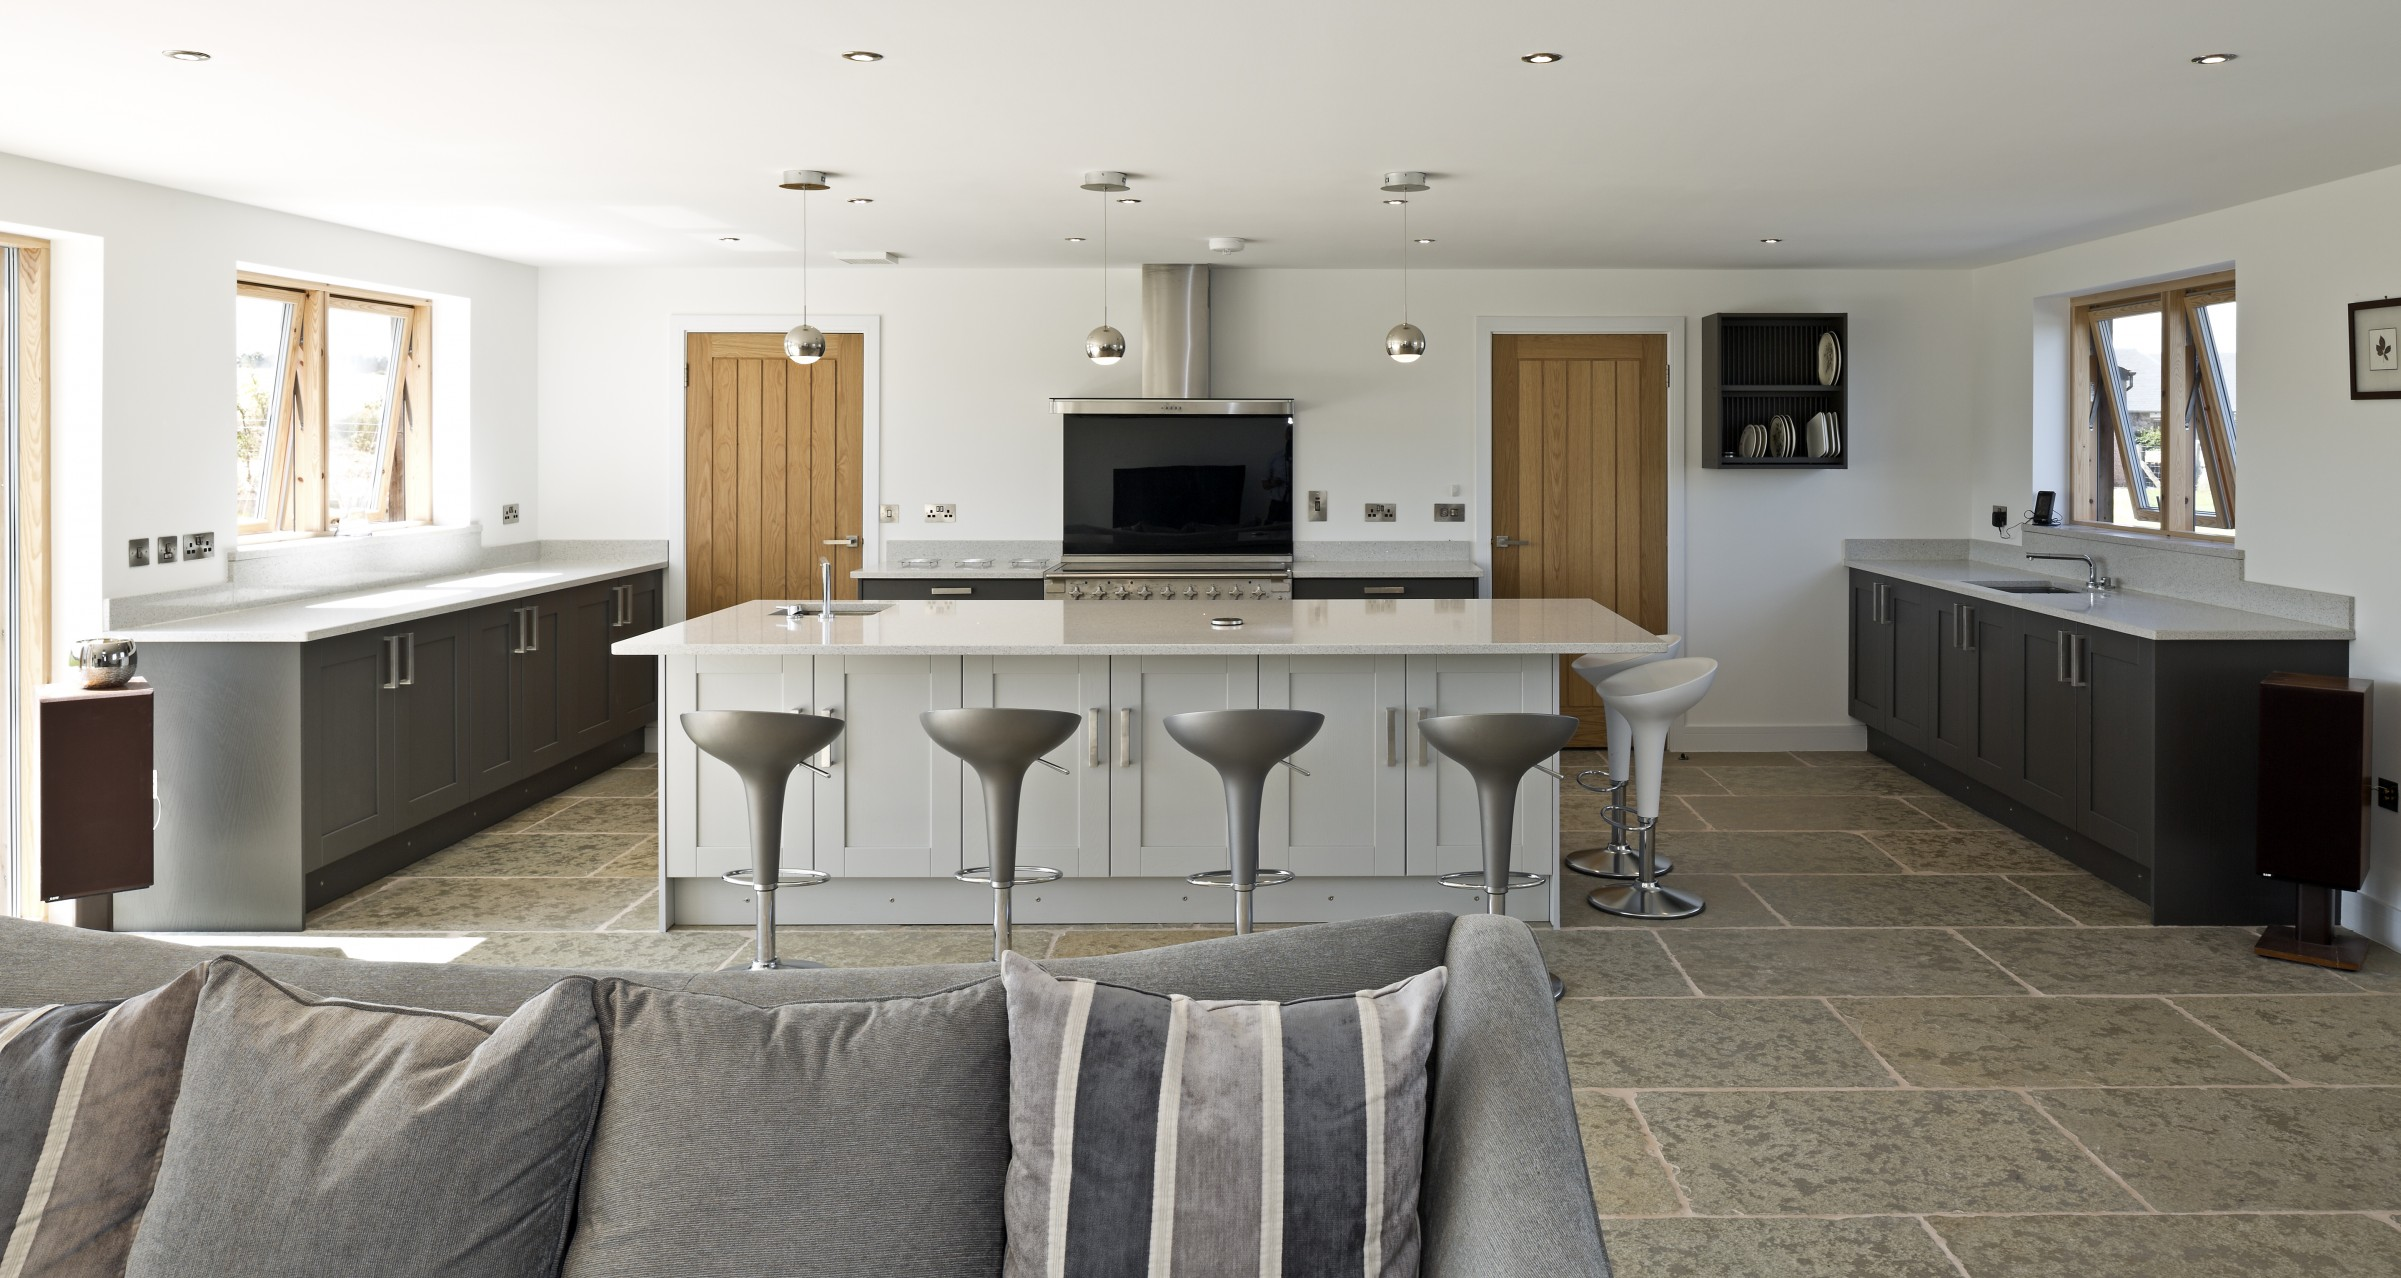 Amor Kitchen - Homebuilding & Renovating Magazine Featured Home